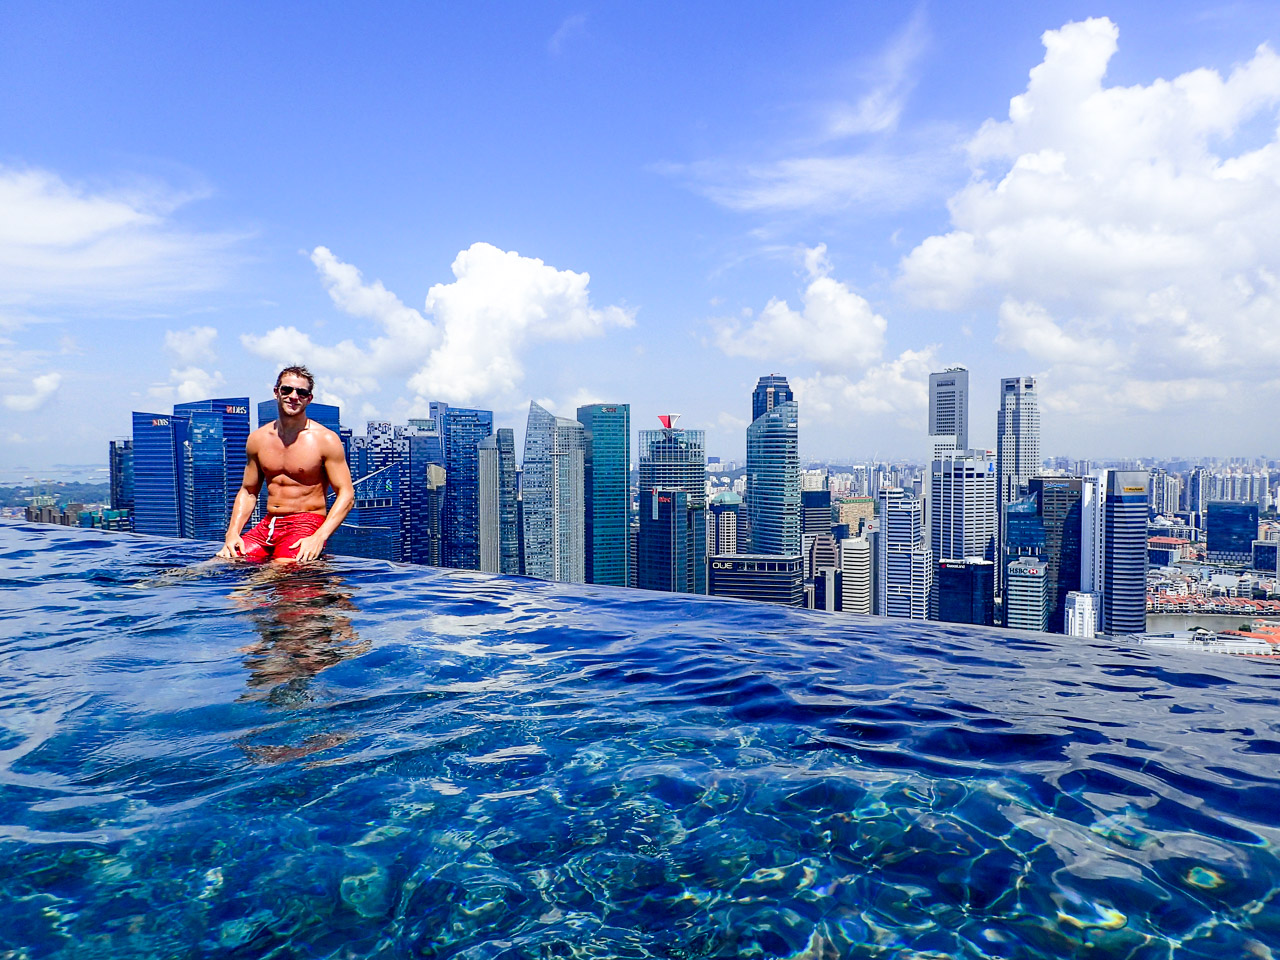 Splurging At Marina Bay Sands The World S Largest